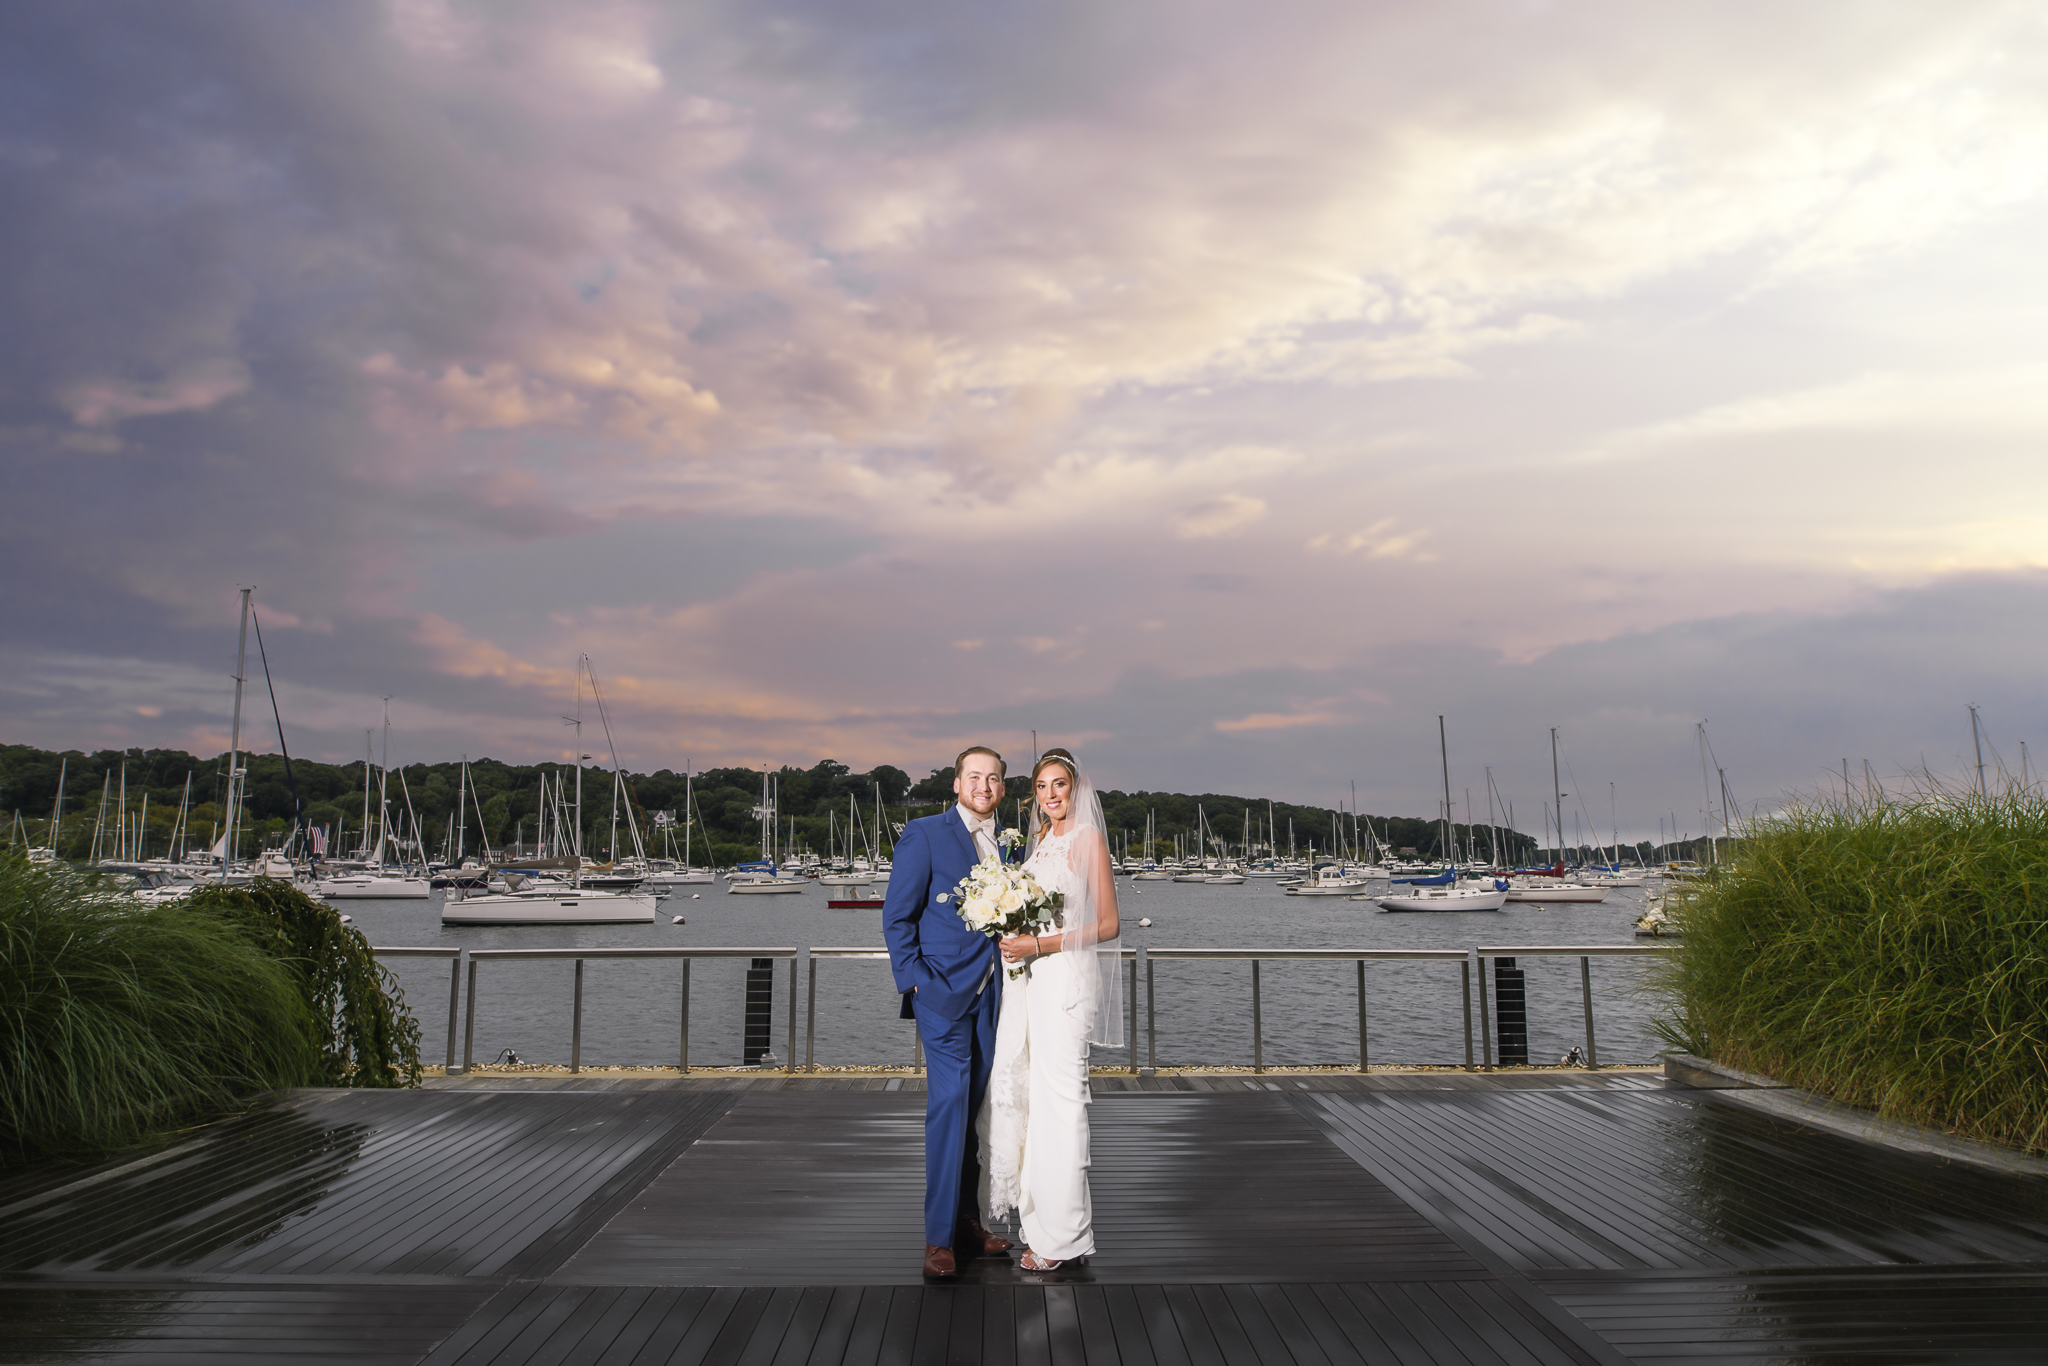 Best Wedding Photos taken at The Harbor Club at Prime-15